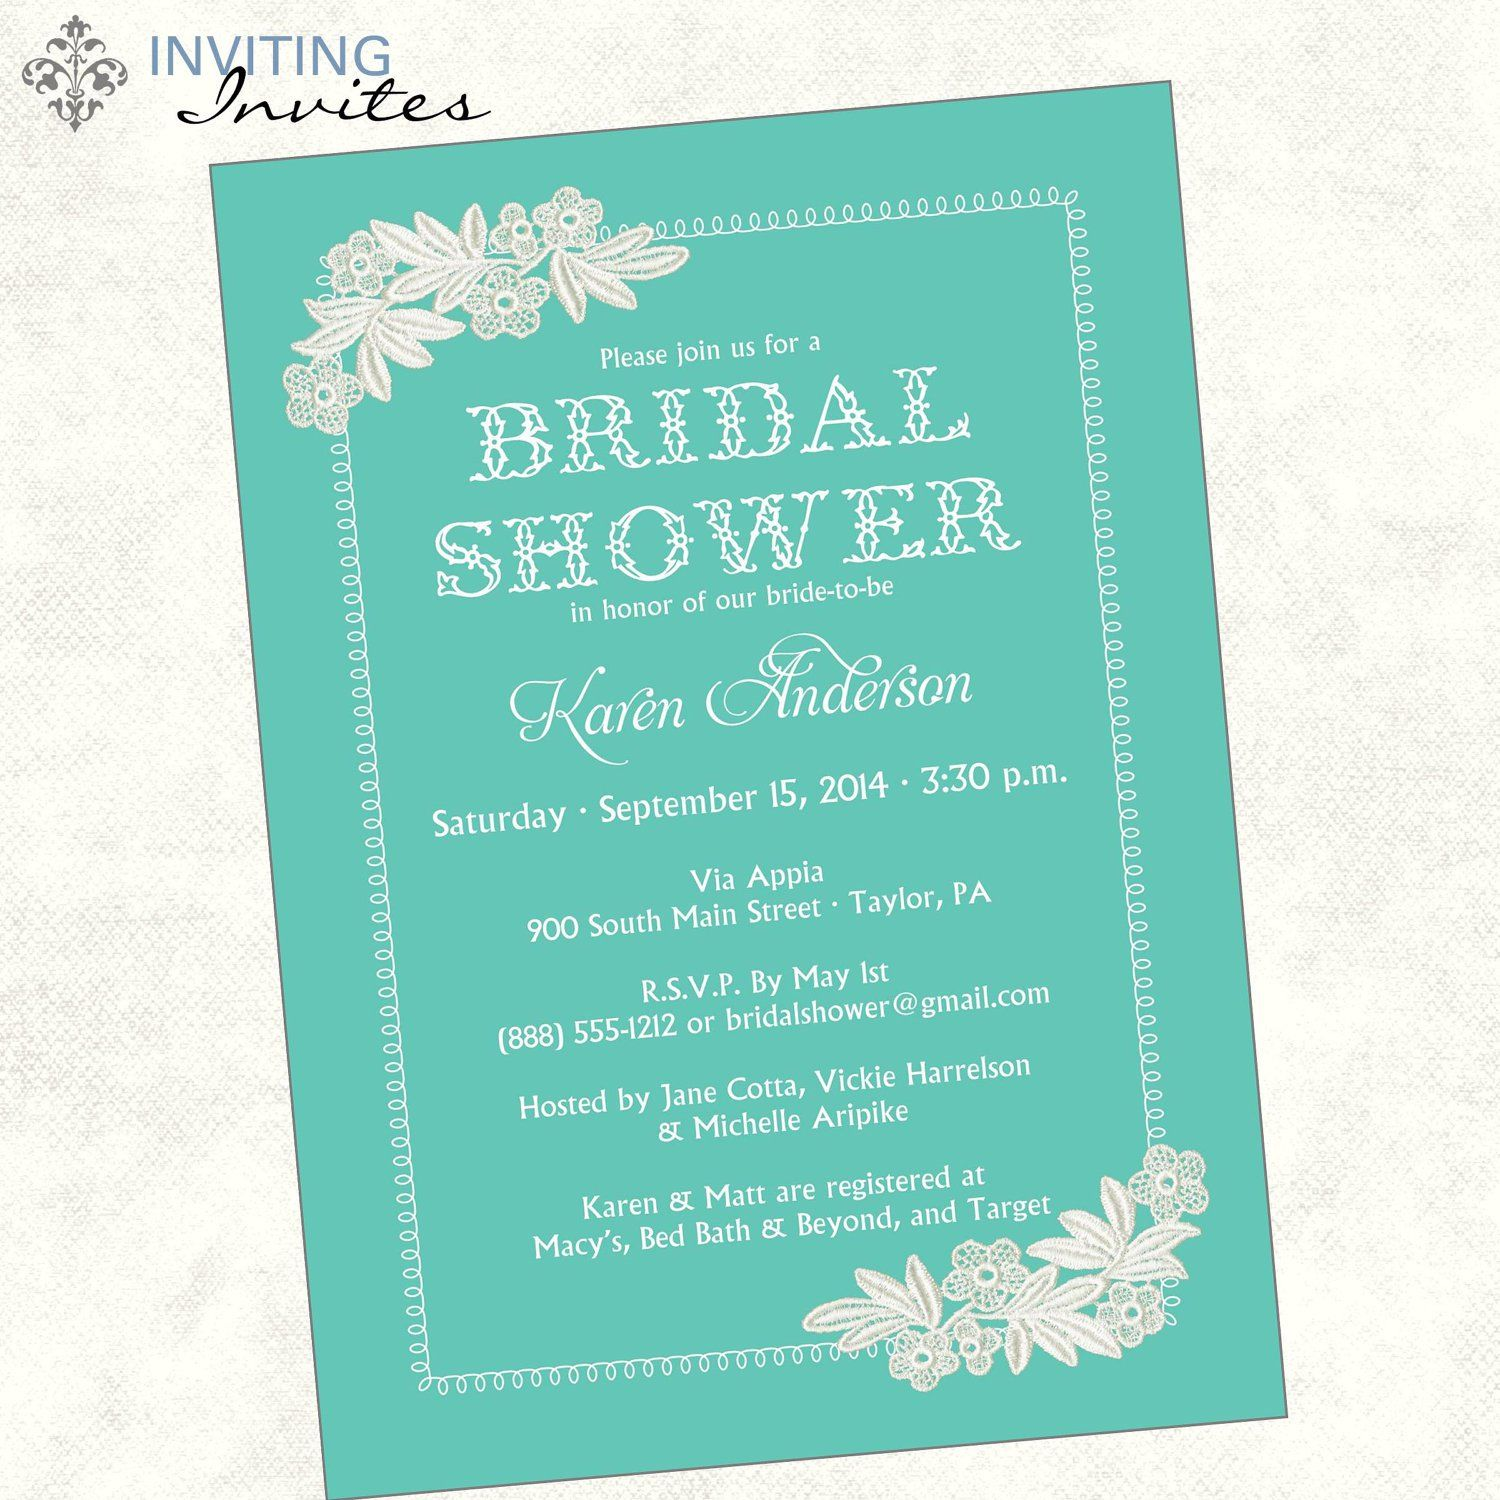 Bridal-shower-invitation-wording-monetary-gifts